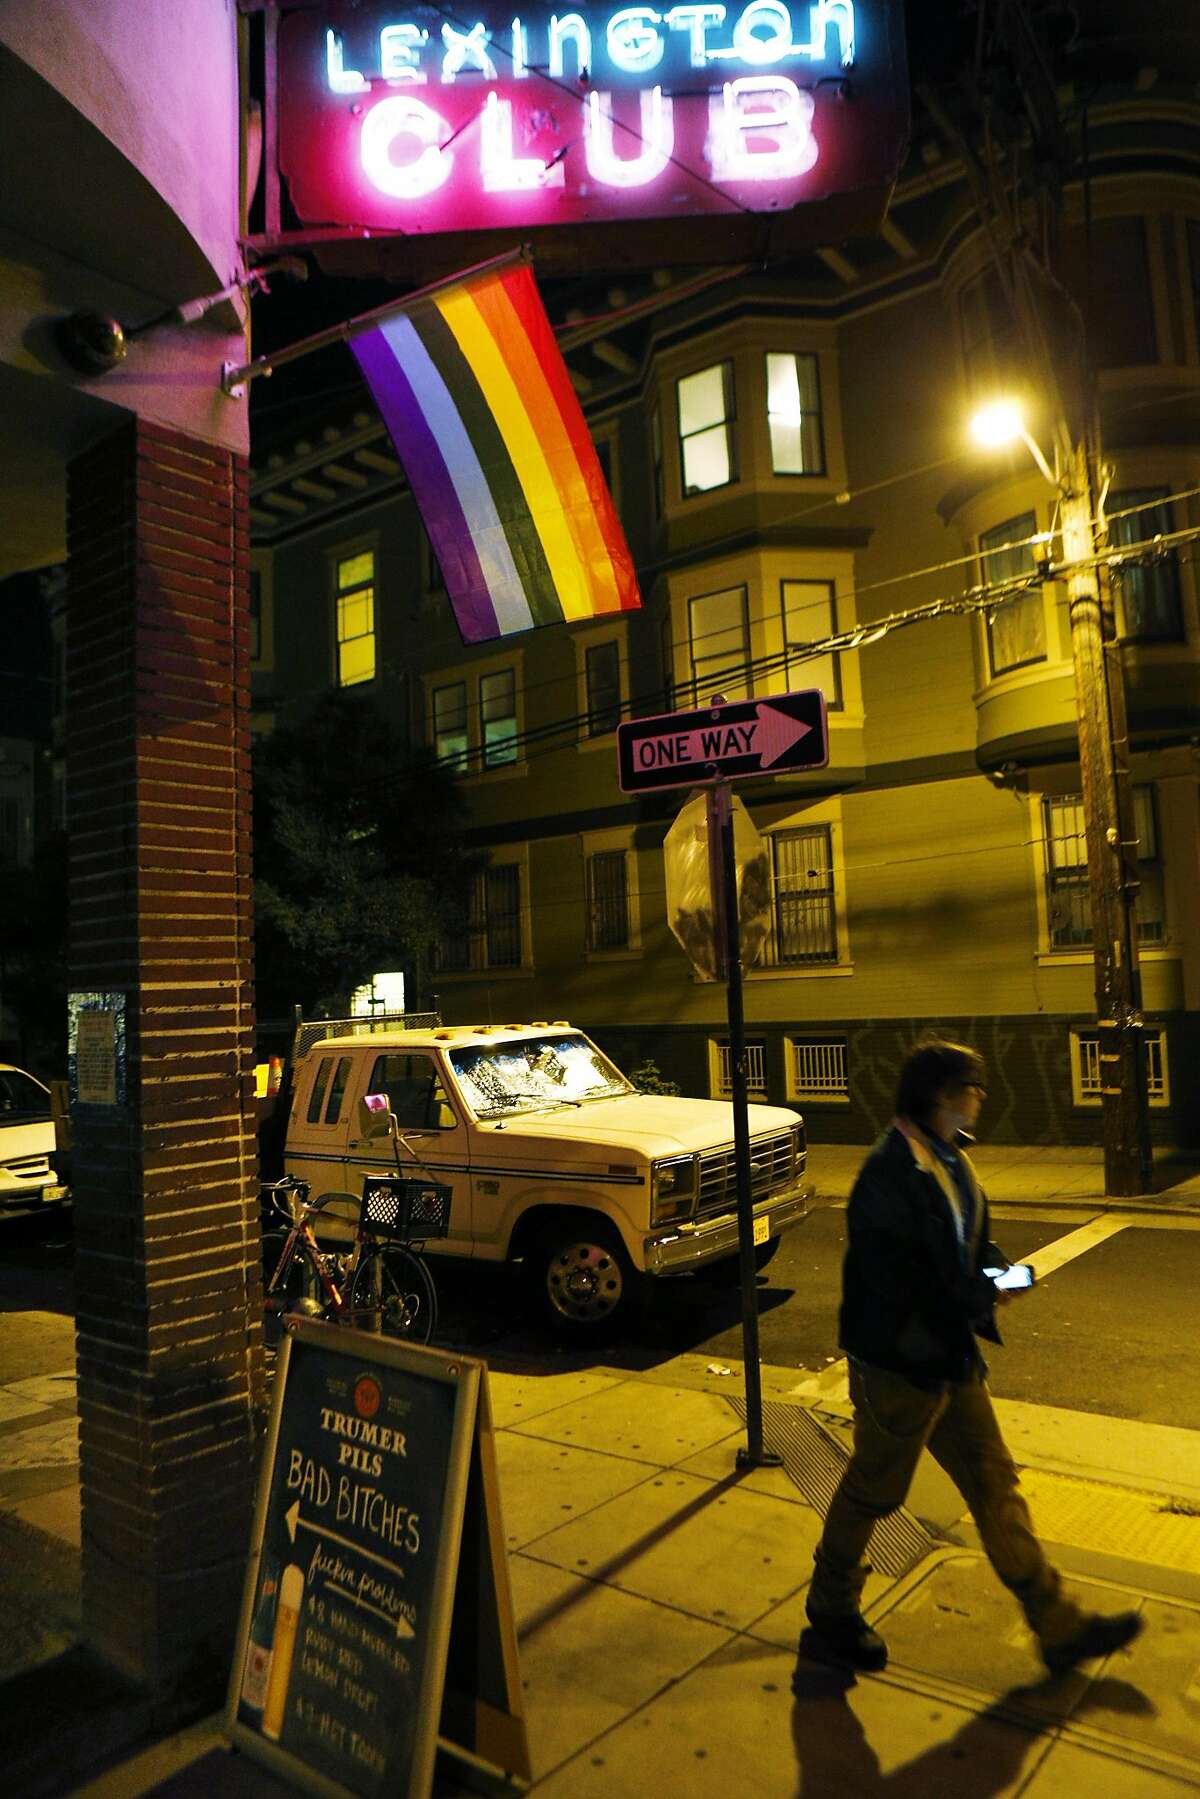 """Lynn Breedlove, owner of Homobiles, stops in at the Lexington Club to see if there's any need for his services in San Francisco, Calif., on Sunday, March 2, 2014. Homobiles is like Uber for drag queens. It's a network of volunteer drivers offering safe rides for """"gender and sexual outlaws"""" who otherwise risk harassment or violence. Drivers accept donations."""